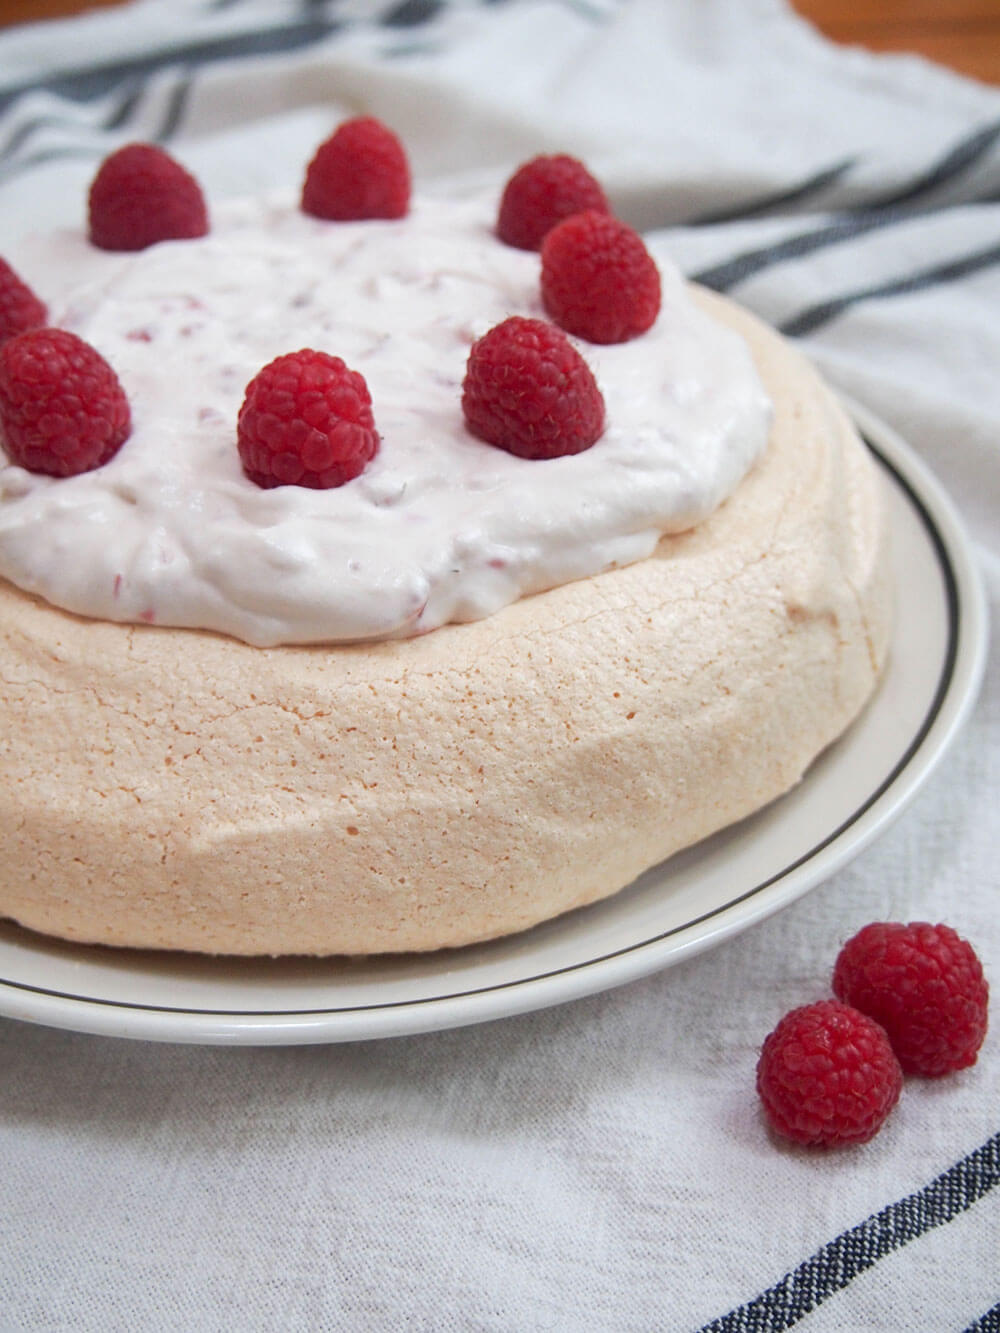 pavlova with raspberries and cream on plate